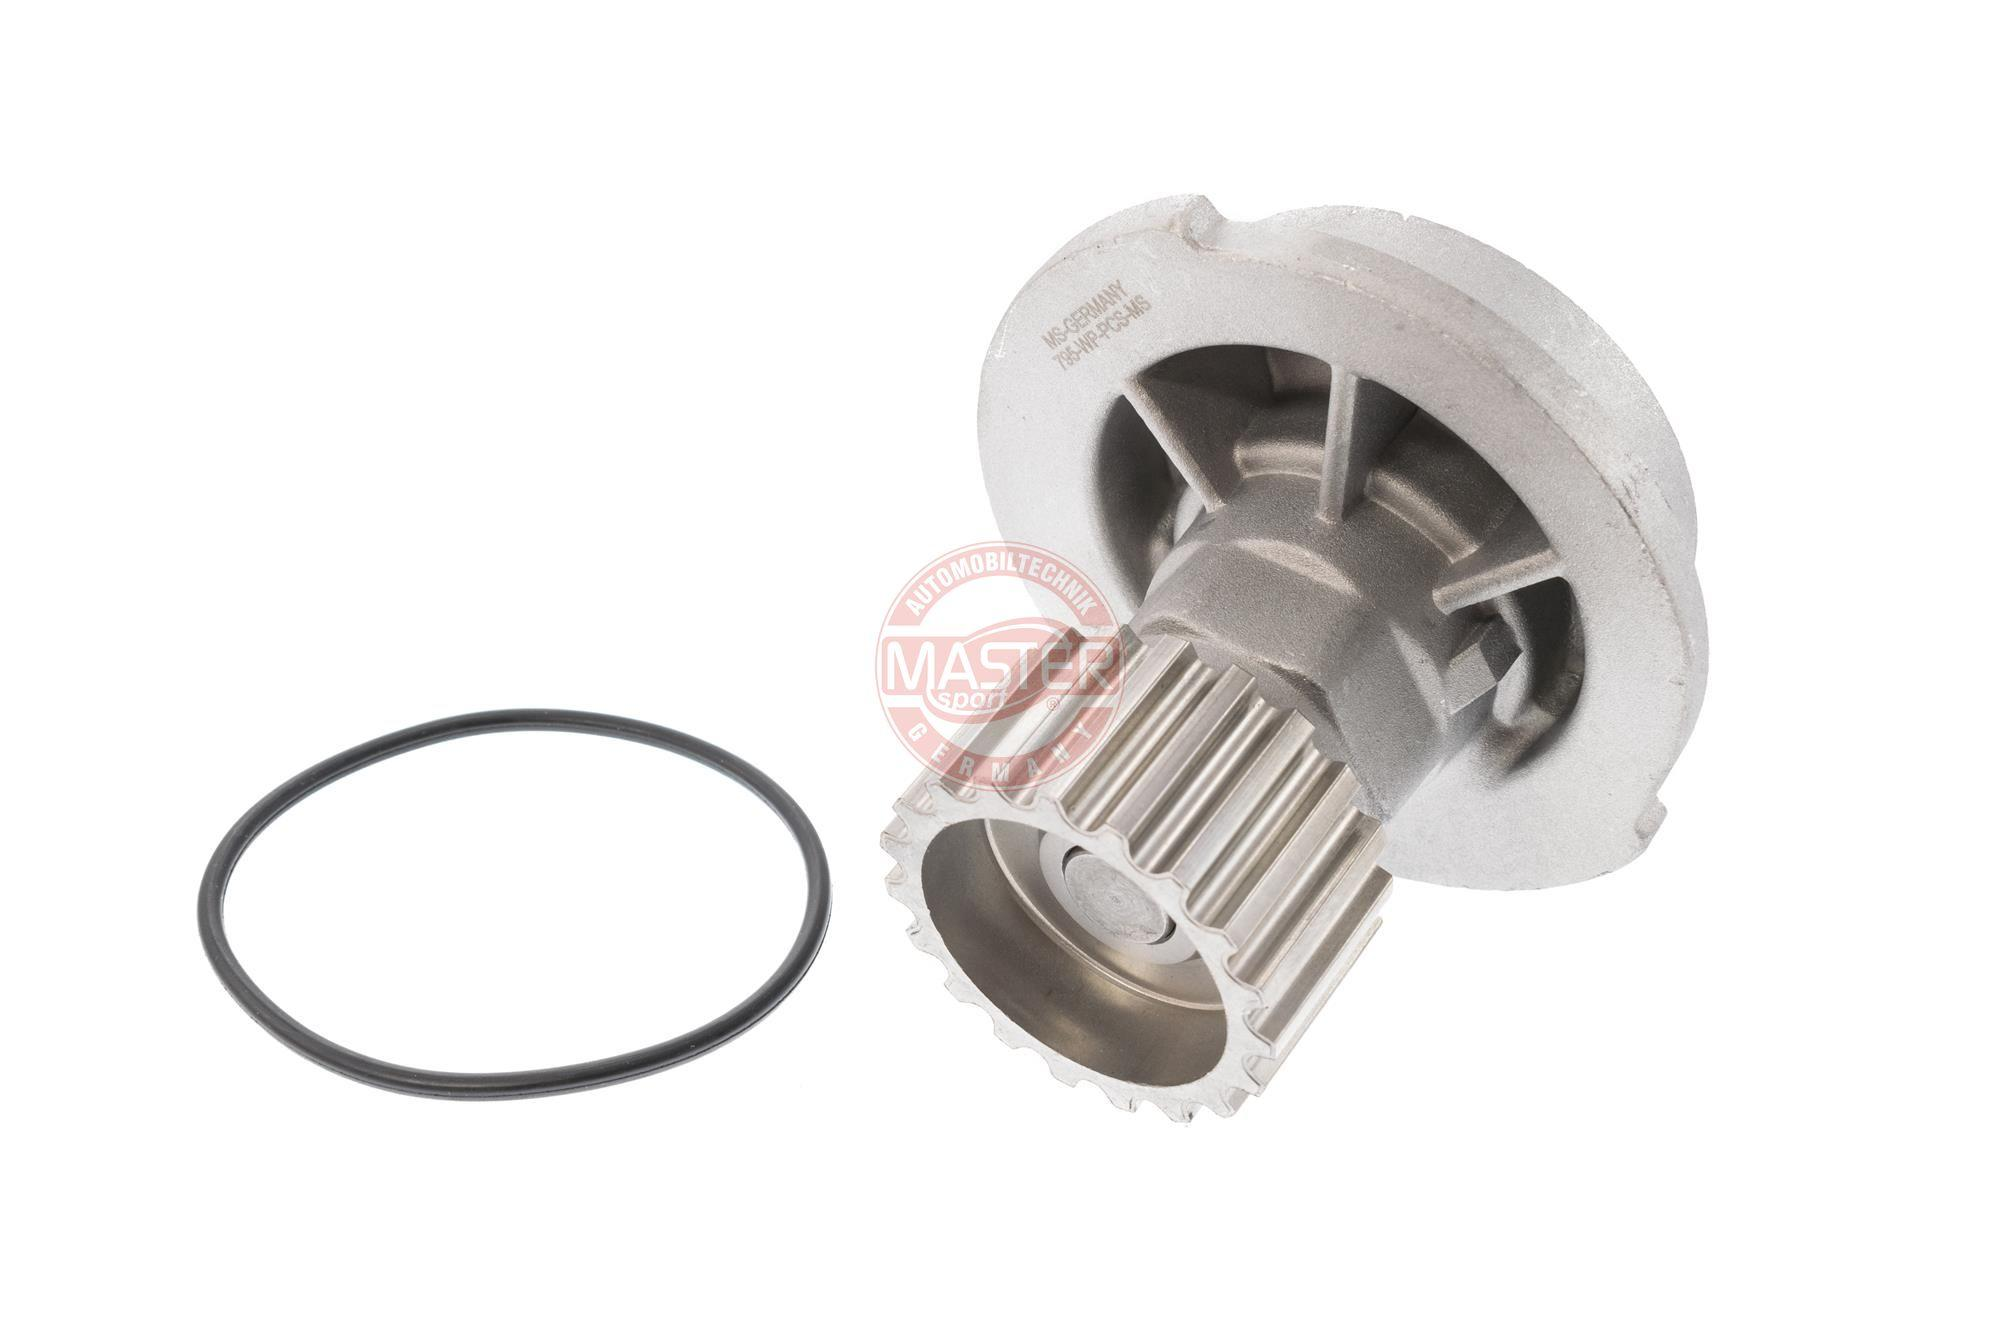 master-sport Waterpomp CHEVROLET,DAEWOO 795-WP-PCS-MS 96182871,96352650,96872702  96182871,96352650